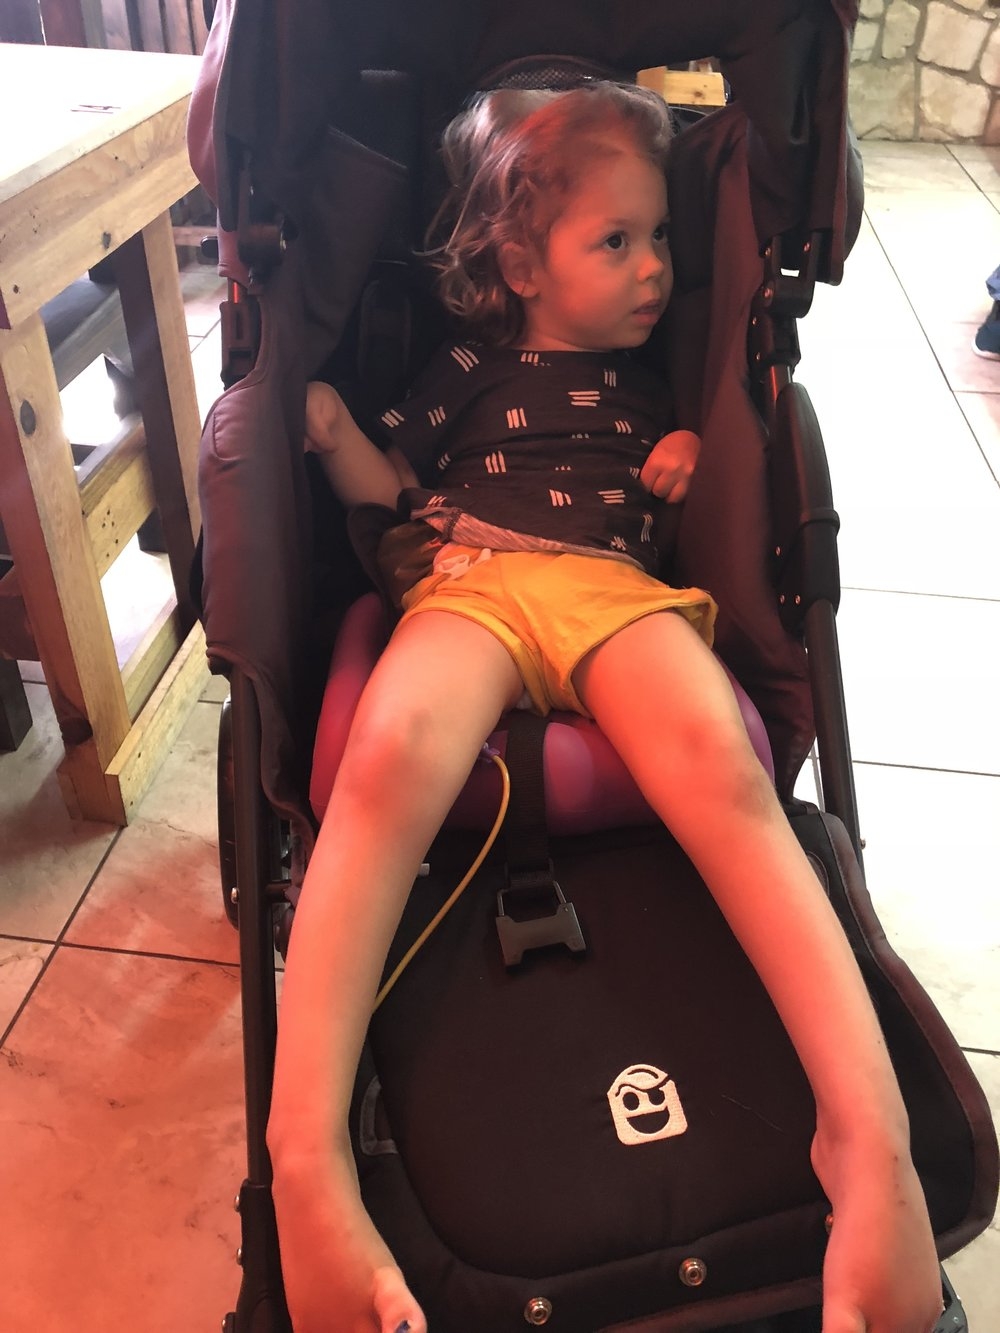 Berk in new stroller from Holton's Heroes